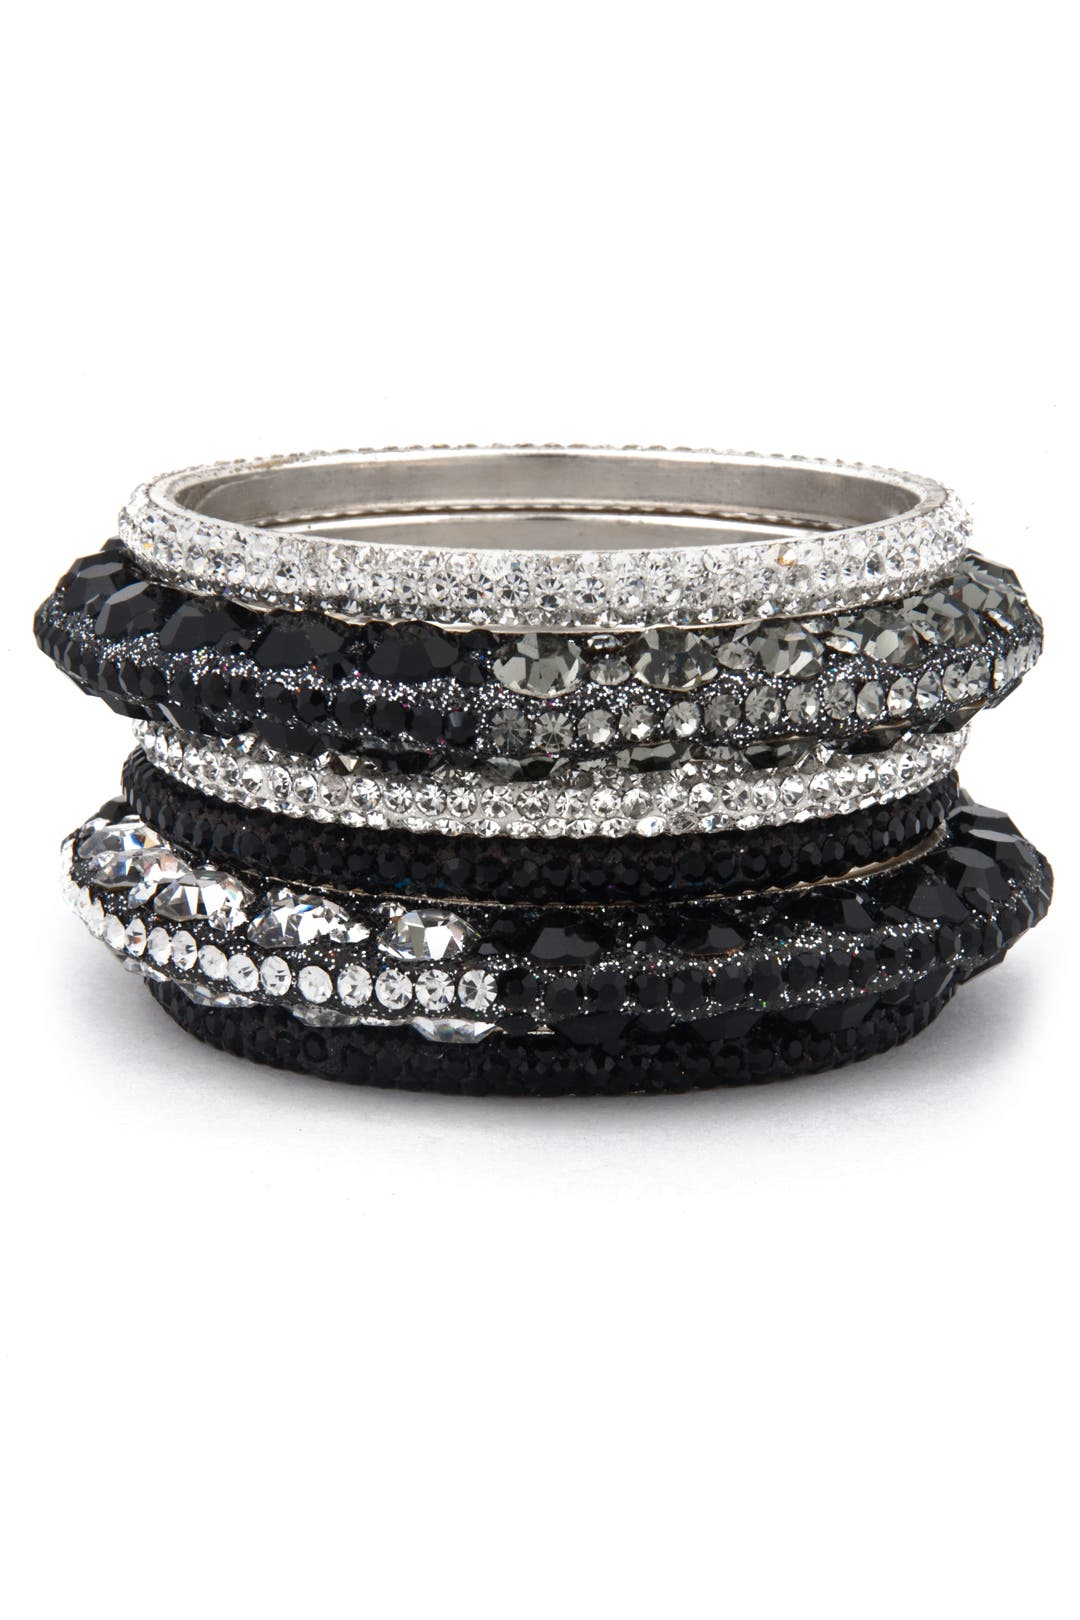 Black Ice Bangle Set by Chamak by Priya Kakkar